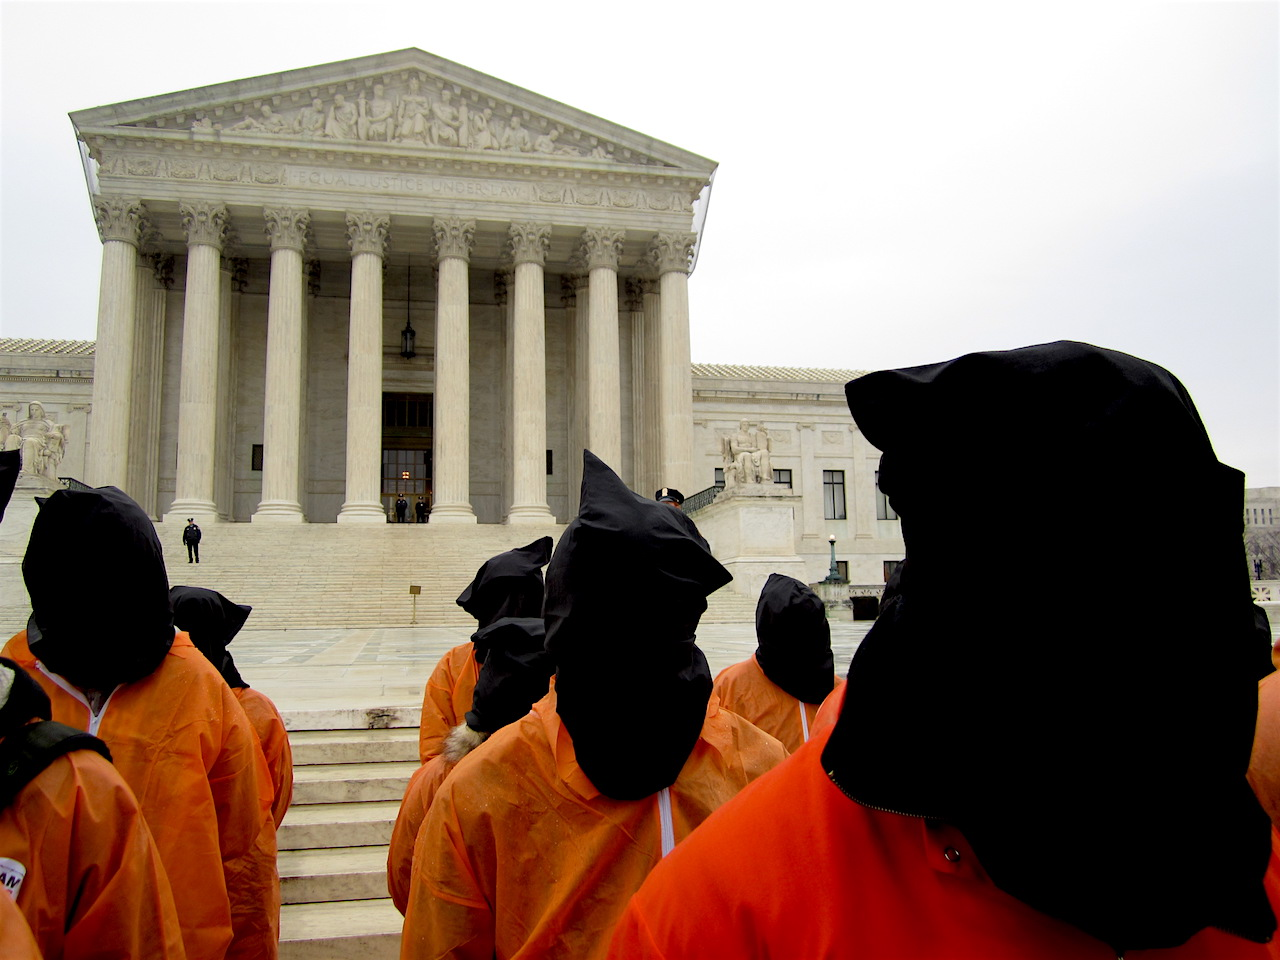 Protestors against rh existence of Guantanamo outside the US Supreme Court on January 11, 2012, the 10th anniversary of the opening of the prison (Photo: Andy Worthington).